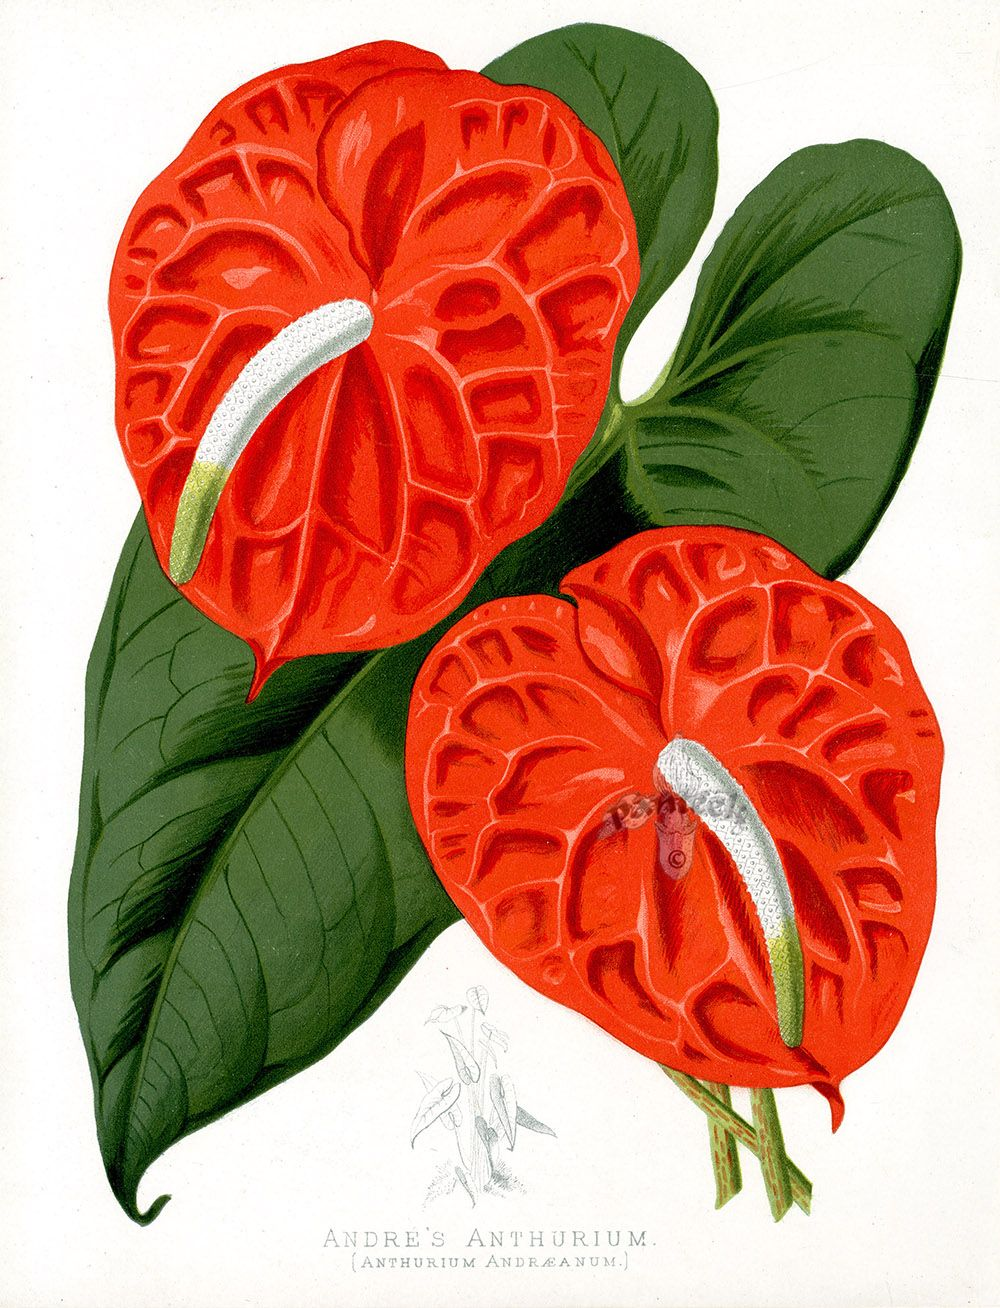 Andre S Anthurium Anthurium Andraeanum From Floral Prints By Joseph Paxton 1884 Flower Art Drawing Botanical Illustration Anthurium